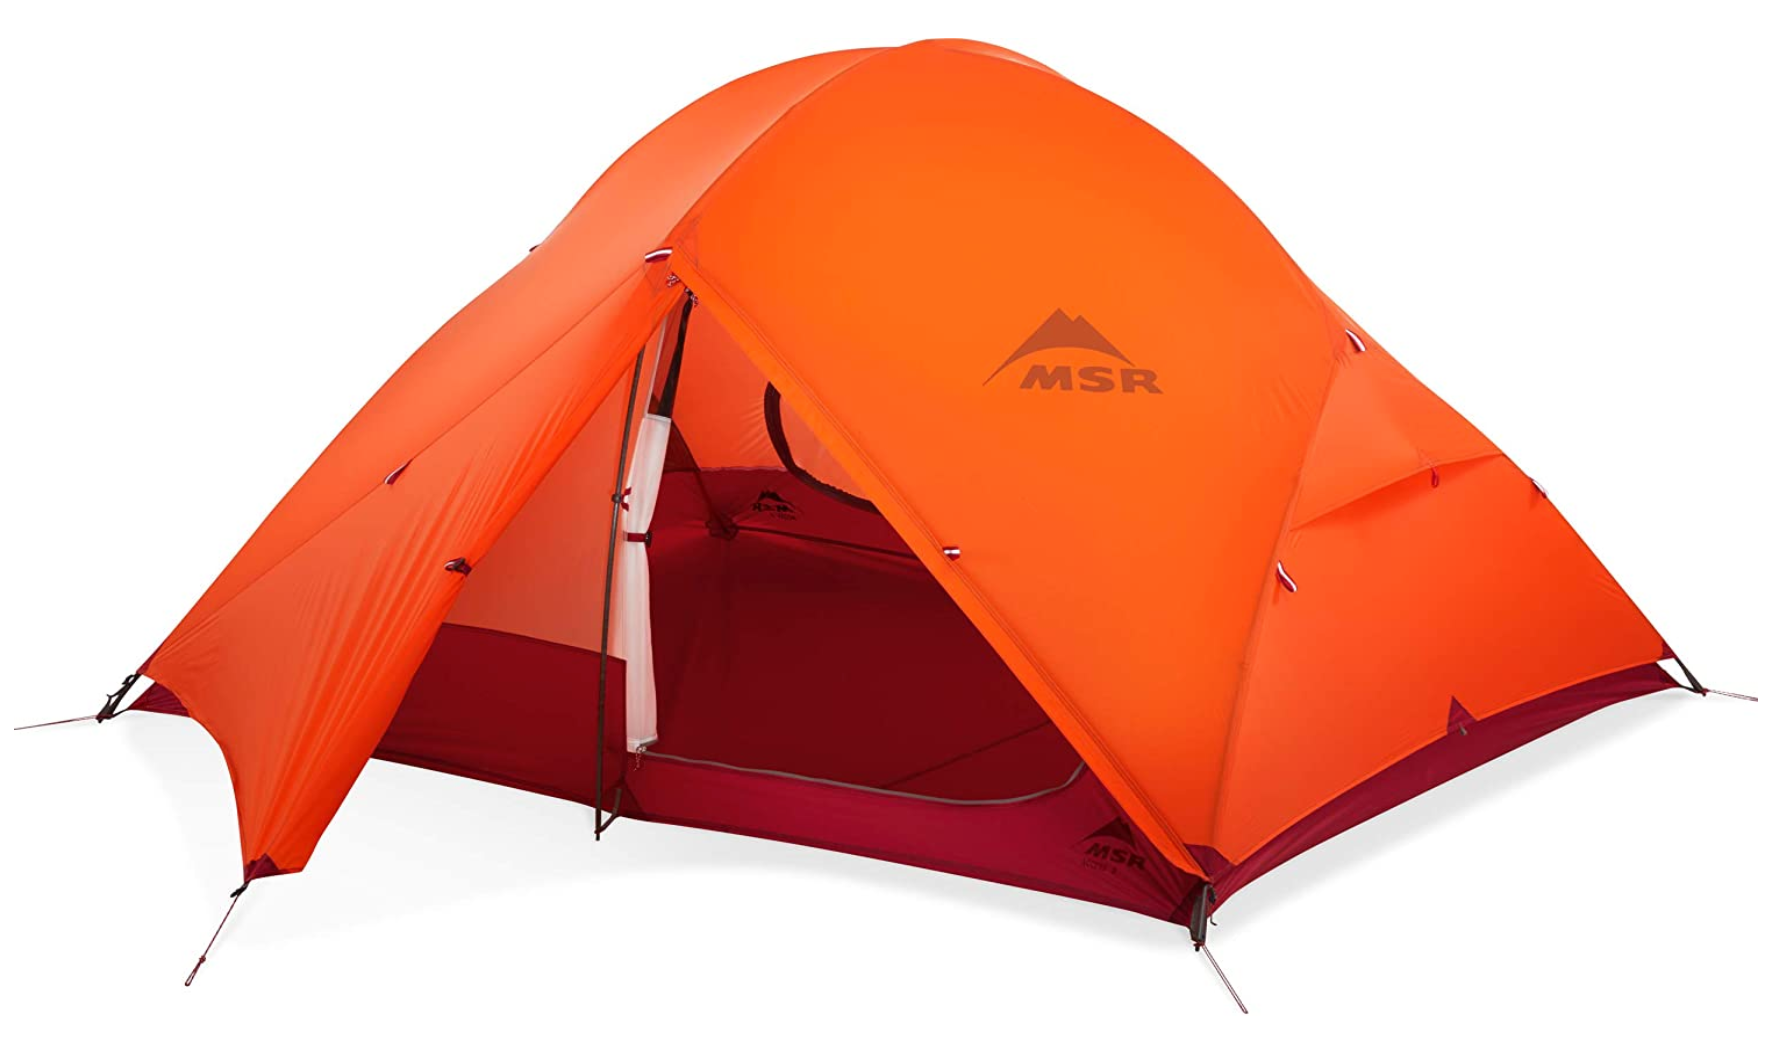 Rent this three person four season tent from Packlist, and have it delivered and picked up.